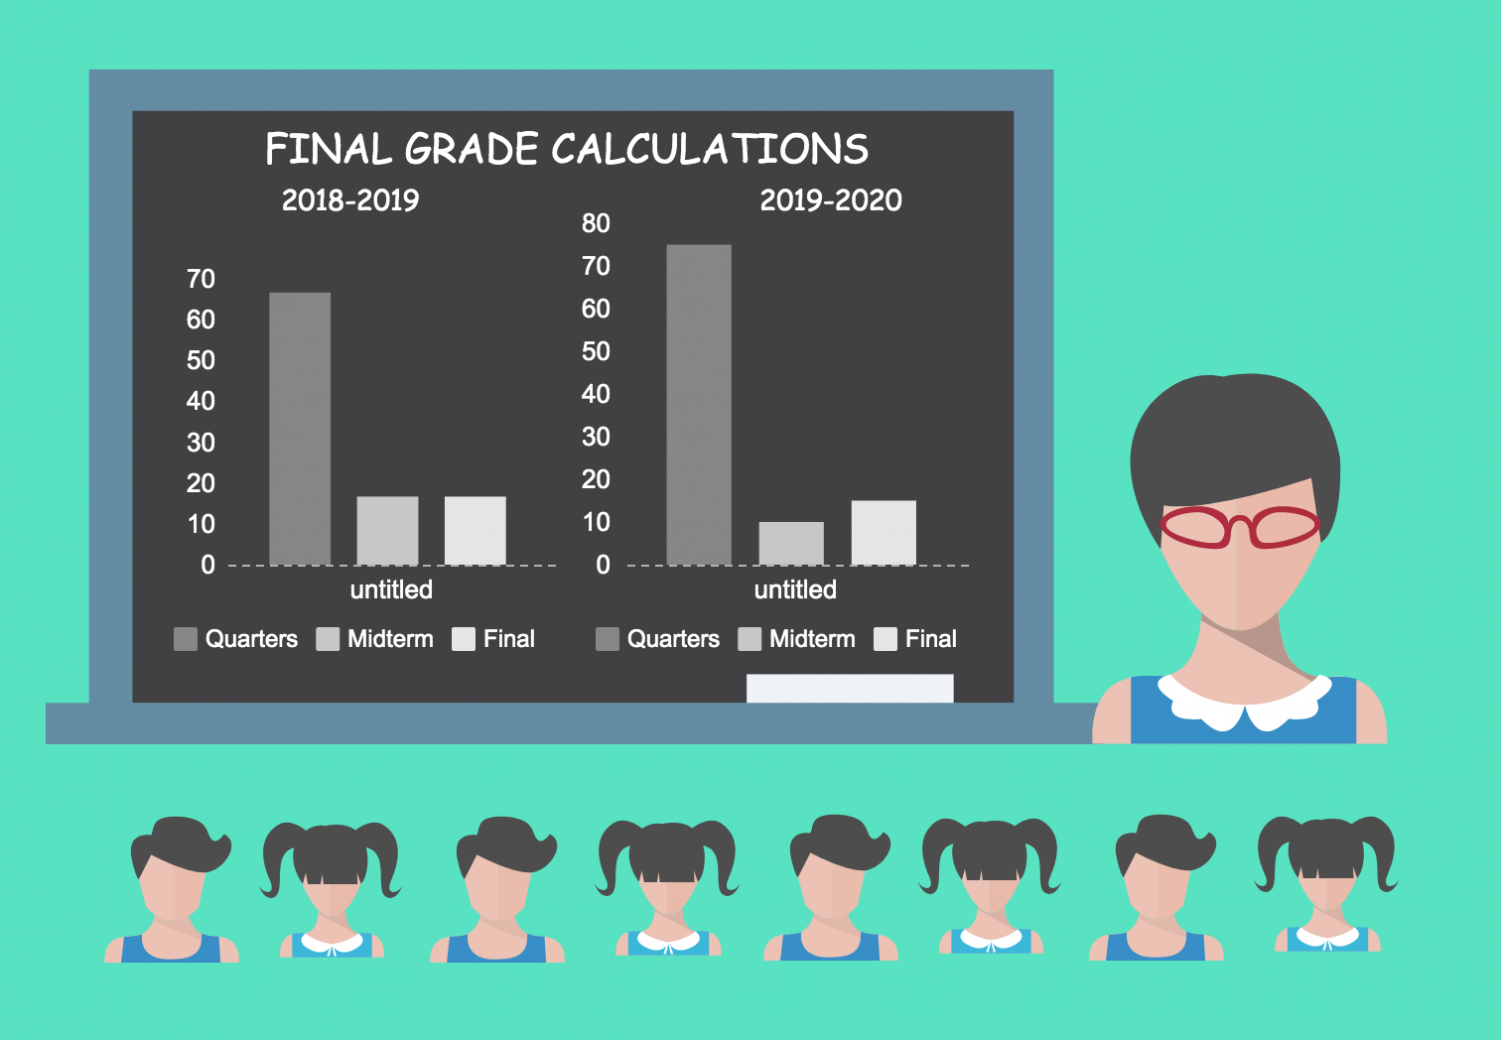 Midterm and final exam grades will go from being a little over 33 percent of a final average to 25 percent in the upcoming school year.  Quarter grades will rise accordingly.